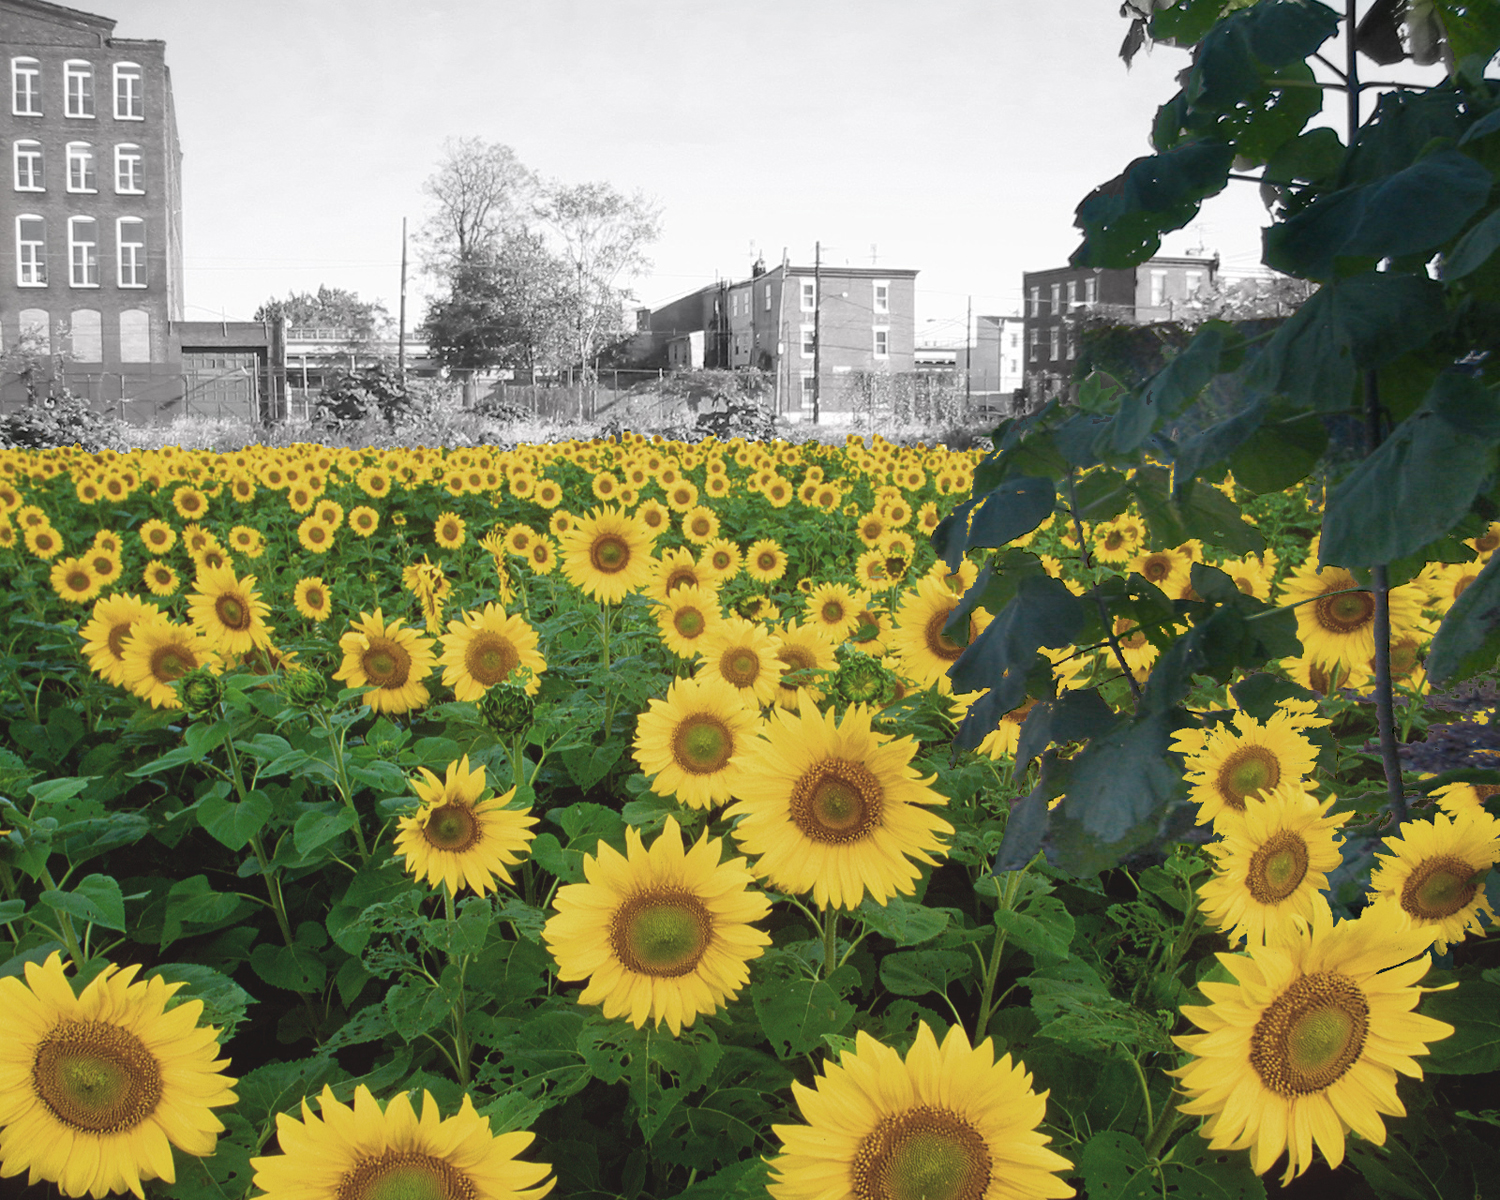 06_Farma_sunflowers.jpg